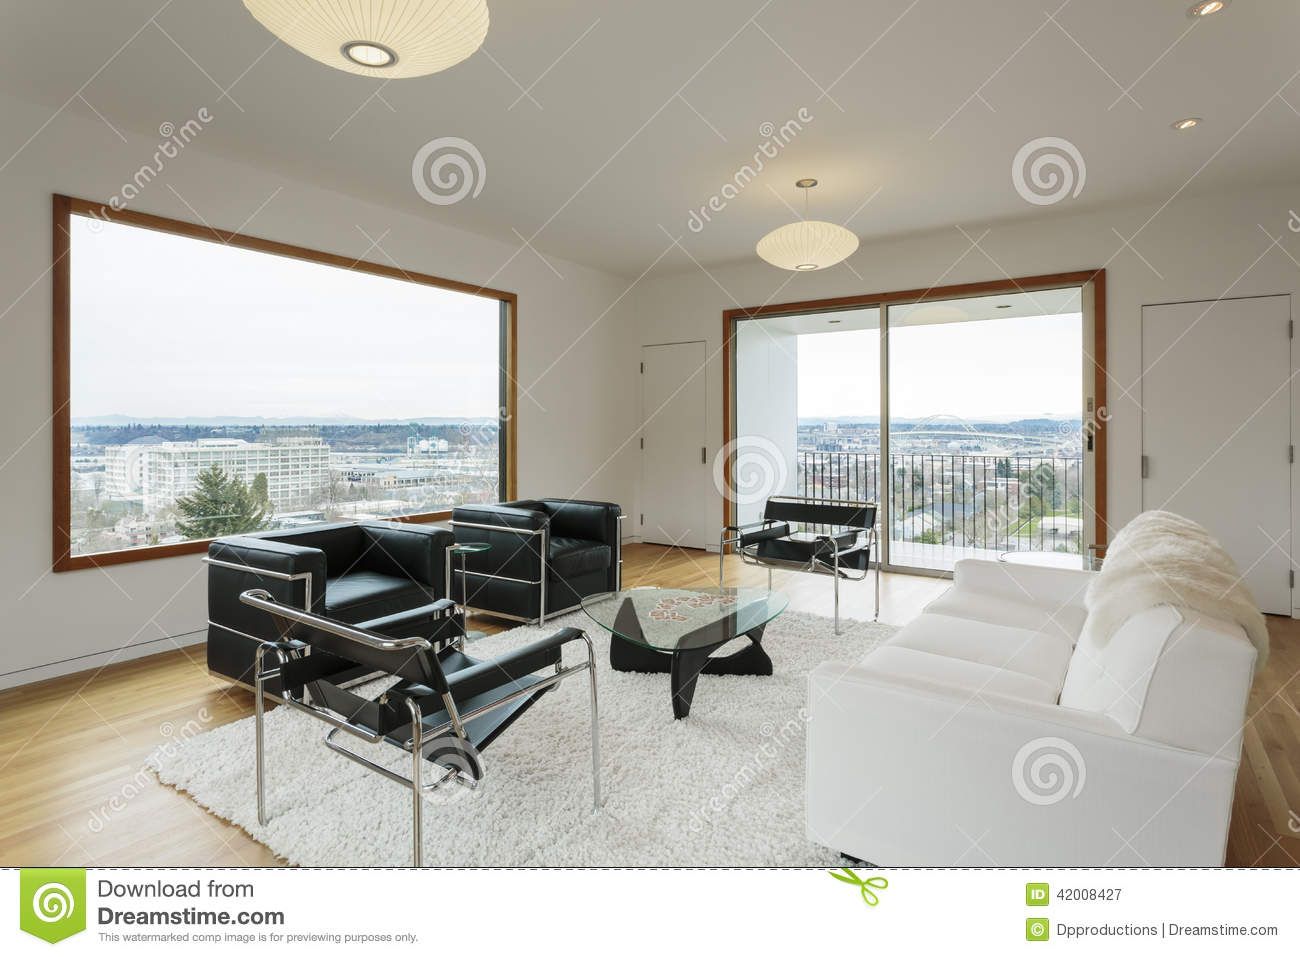 Modern living room with view in daytime stock photo for Living room view